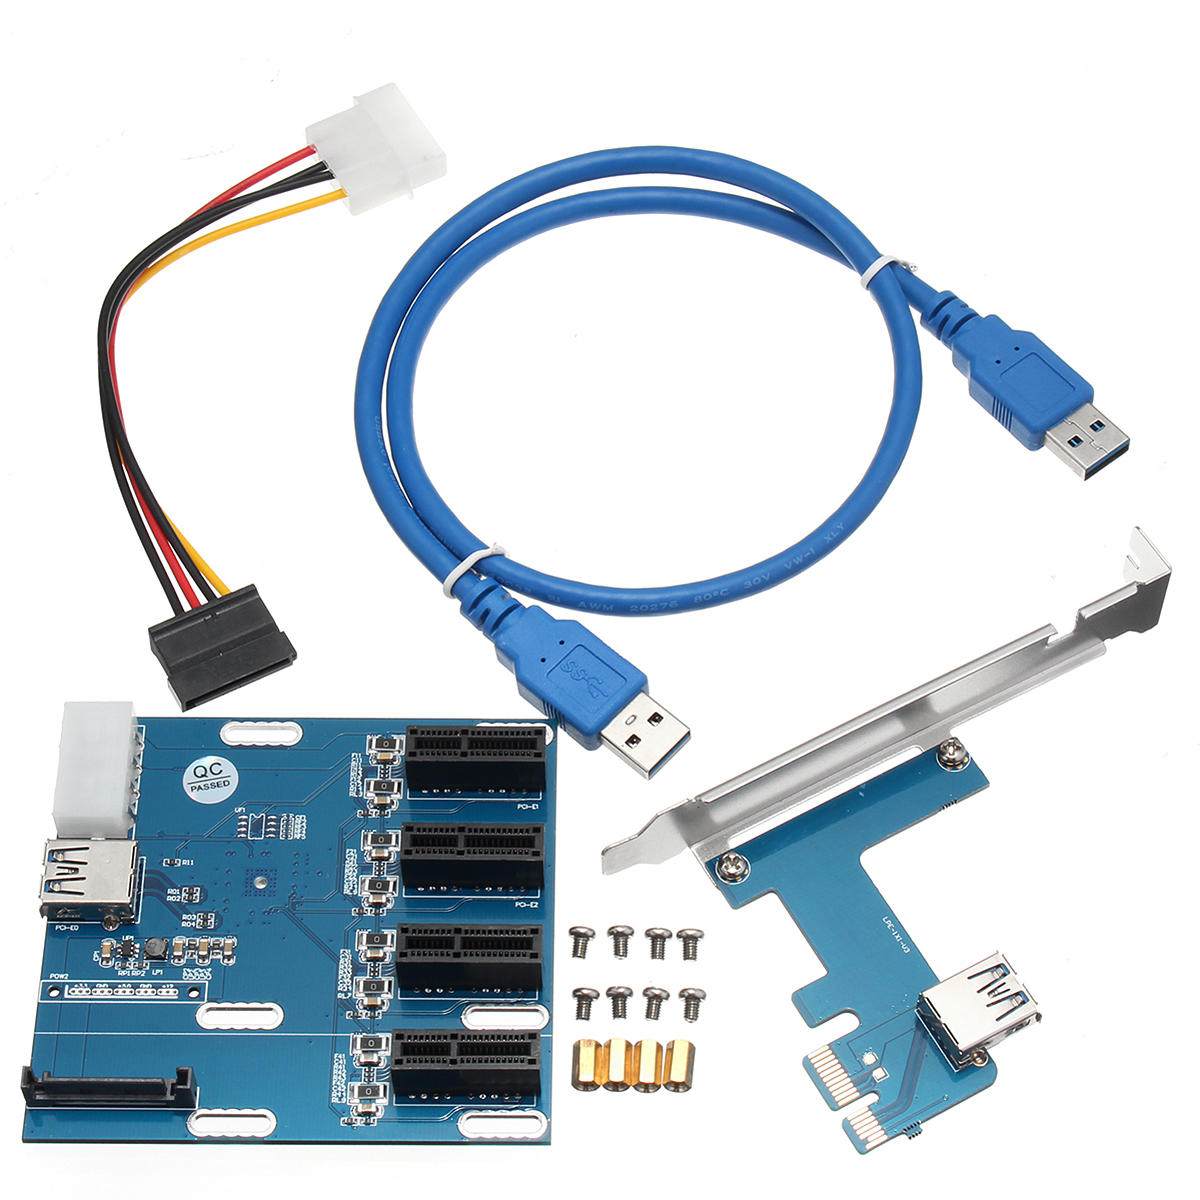 USB Cable cd PCI-e Express 1X to 3 Port 1X Switch Multiplier HUB Riser Card